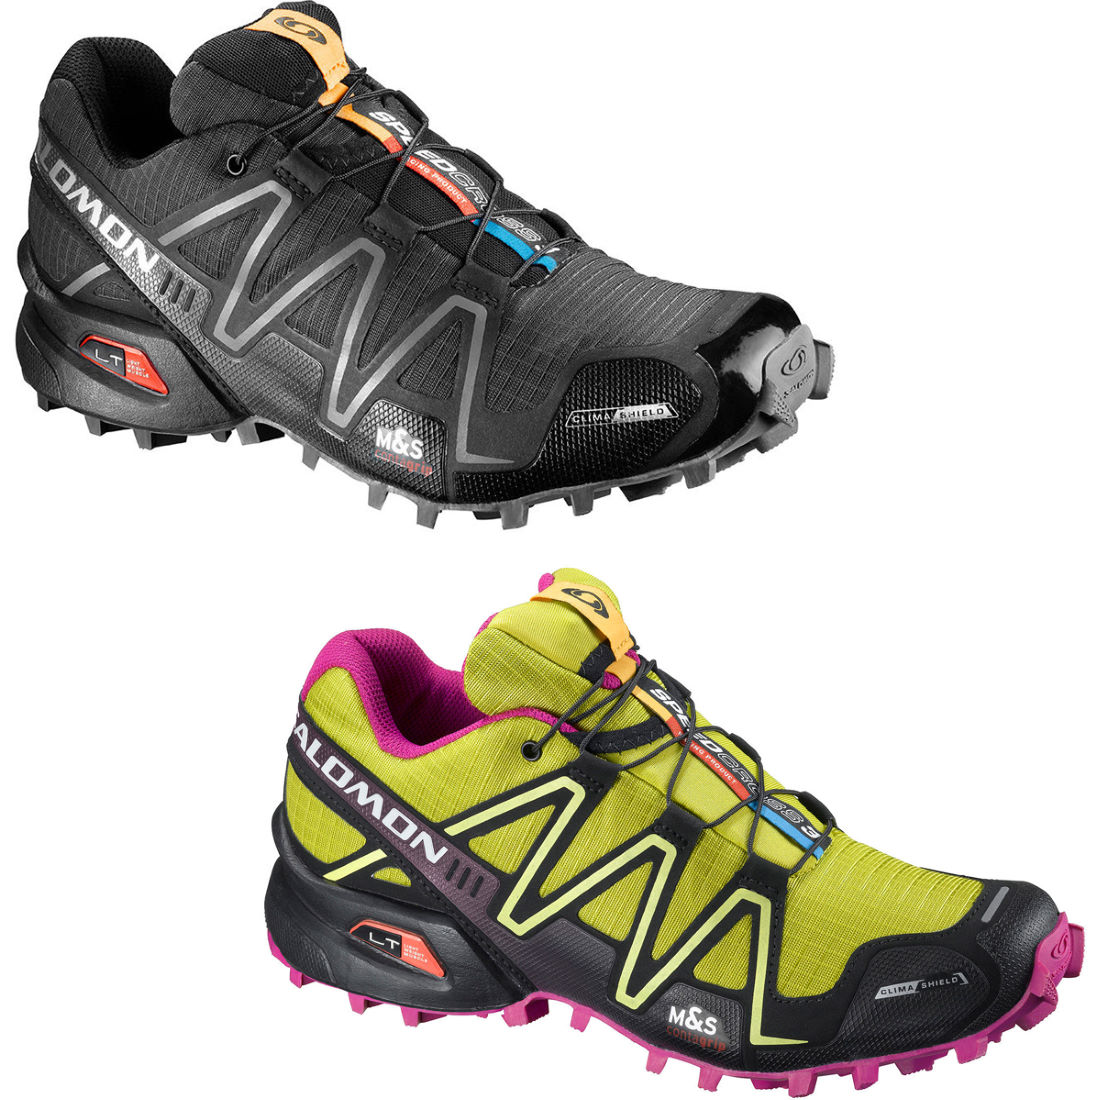 wiggle salomon ladies speedcross 3 cs shoes ss13 offroad running shoes. Black Bedroom Furniture Sets. Home Design Ideas